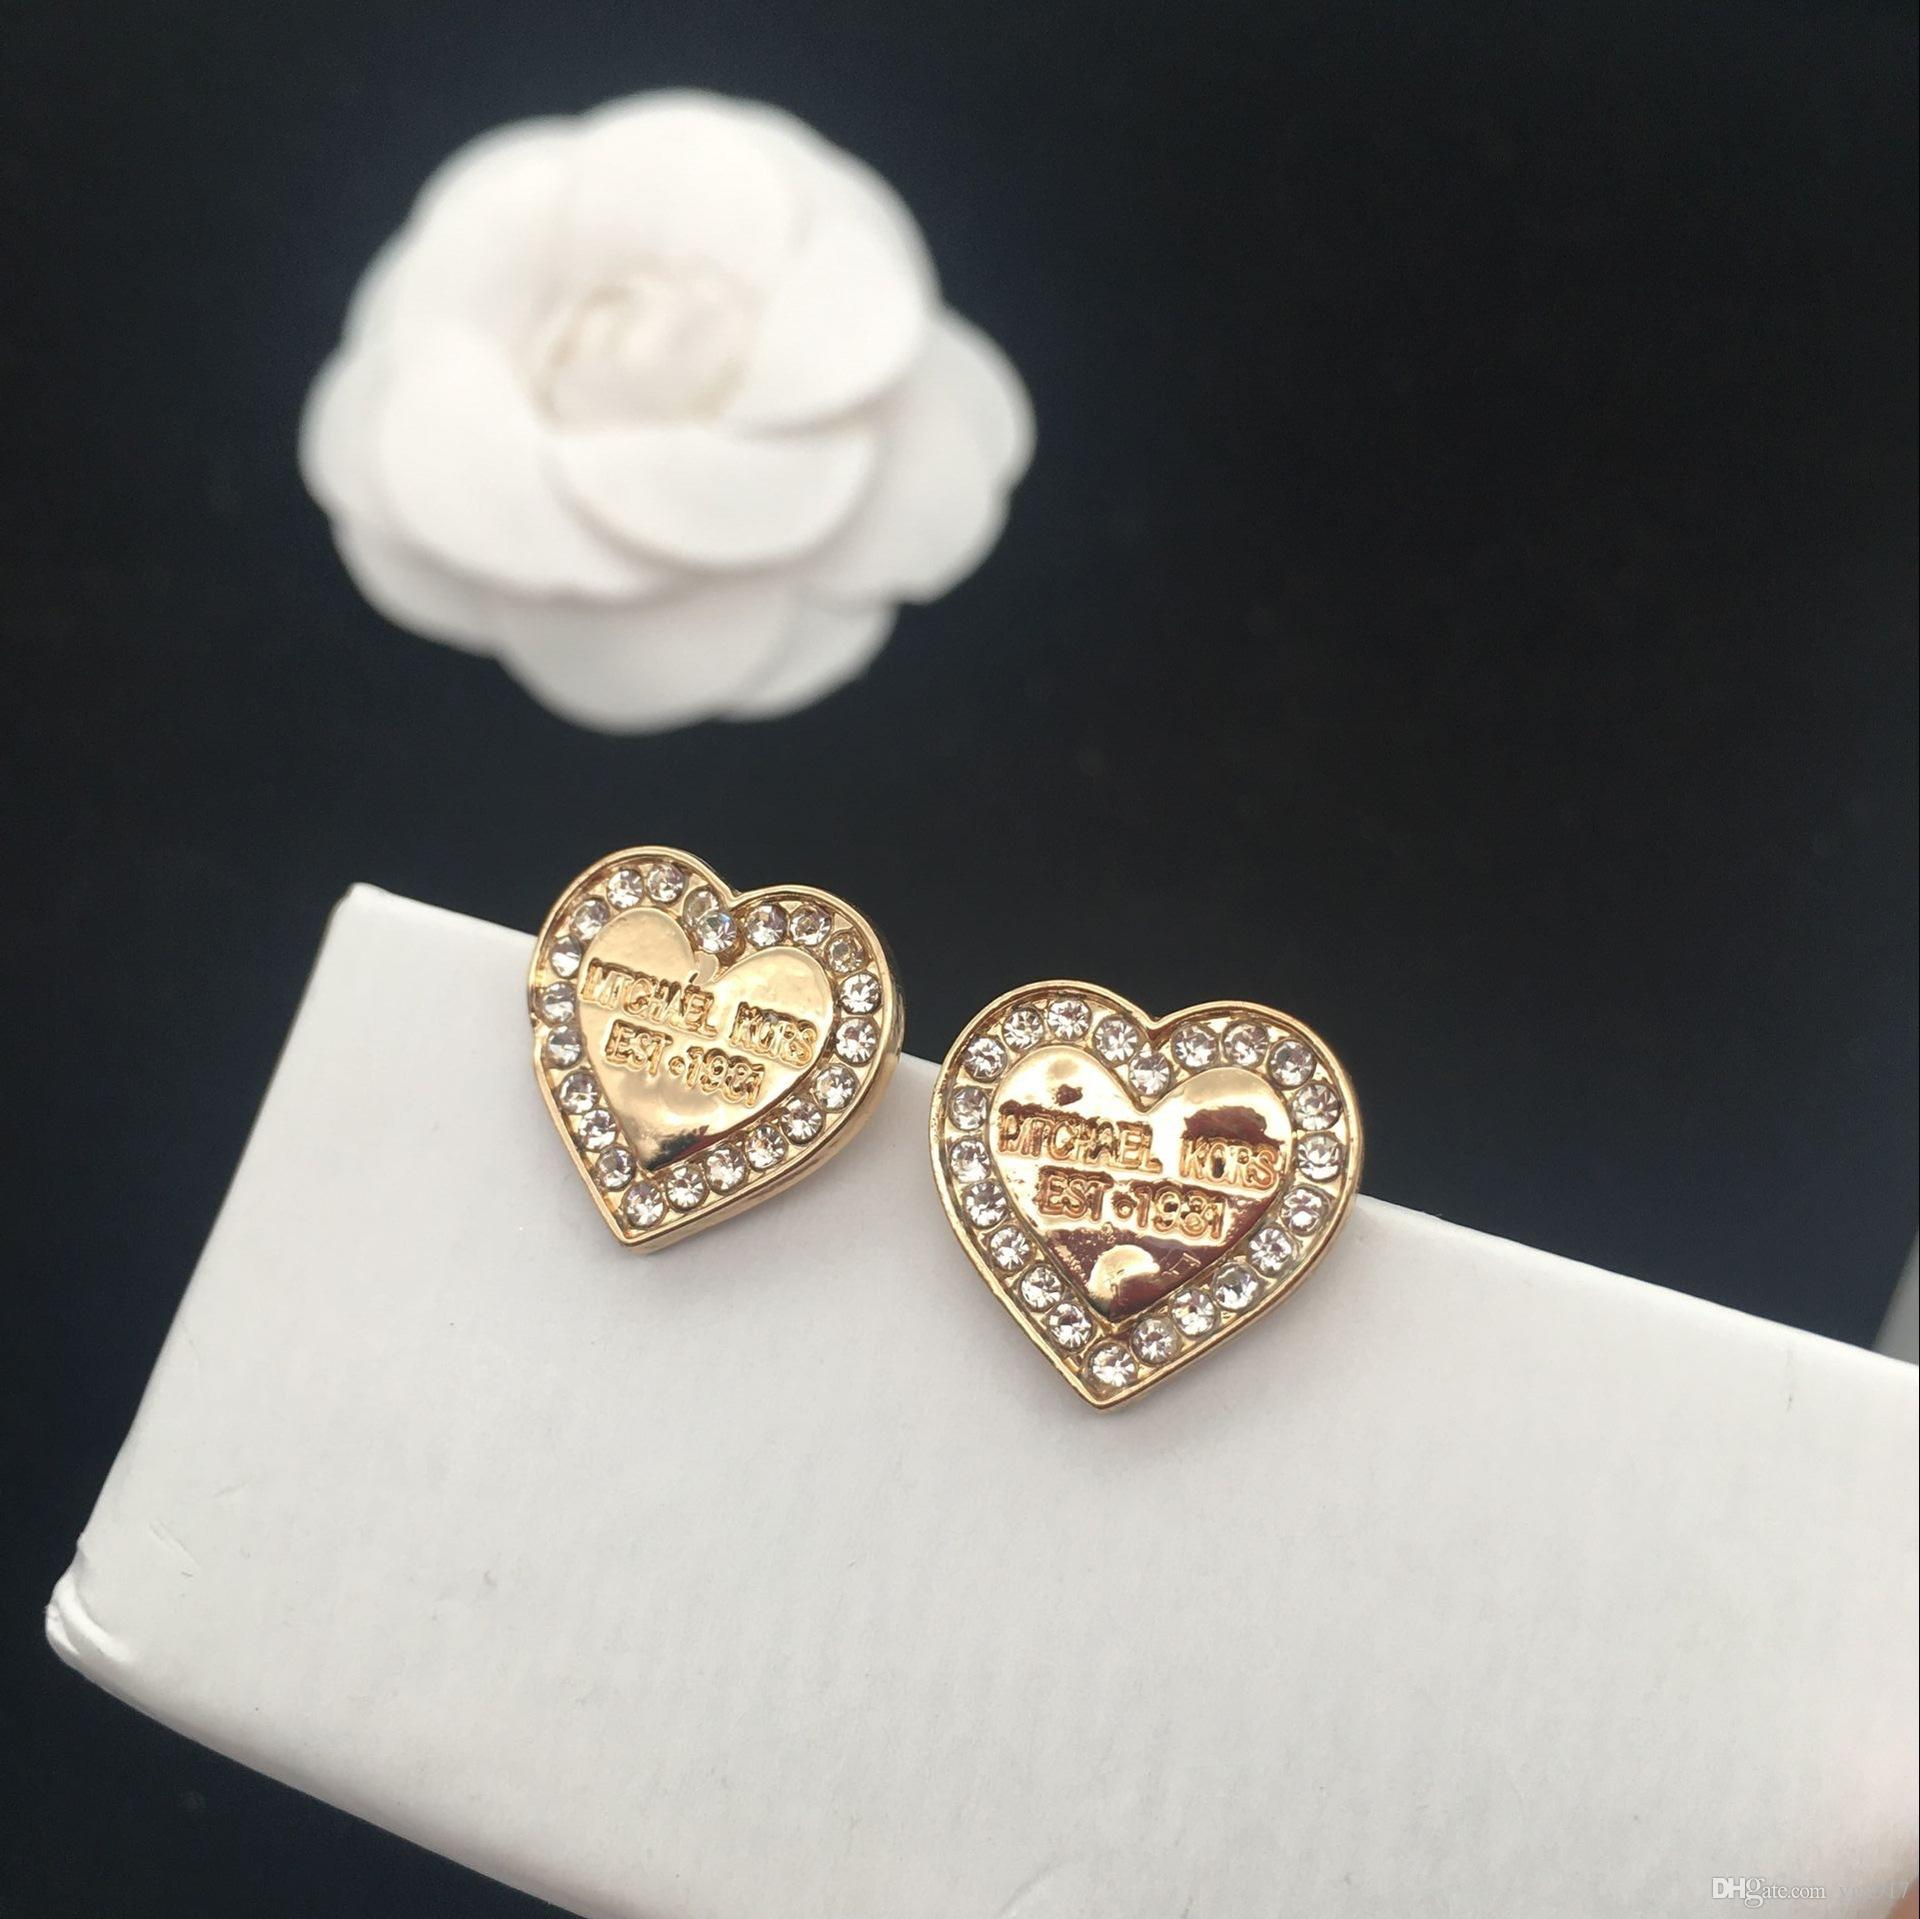 Wholesale Studded M Letter Small Stud Earrings Series Heart-Shaped Diamond  Earrings Selection For Woman Brand Stud